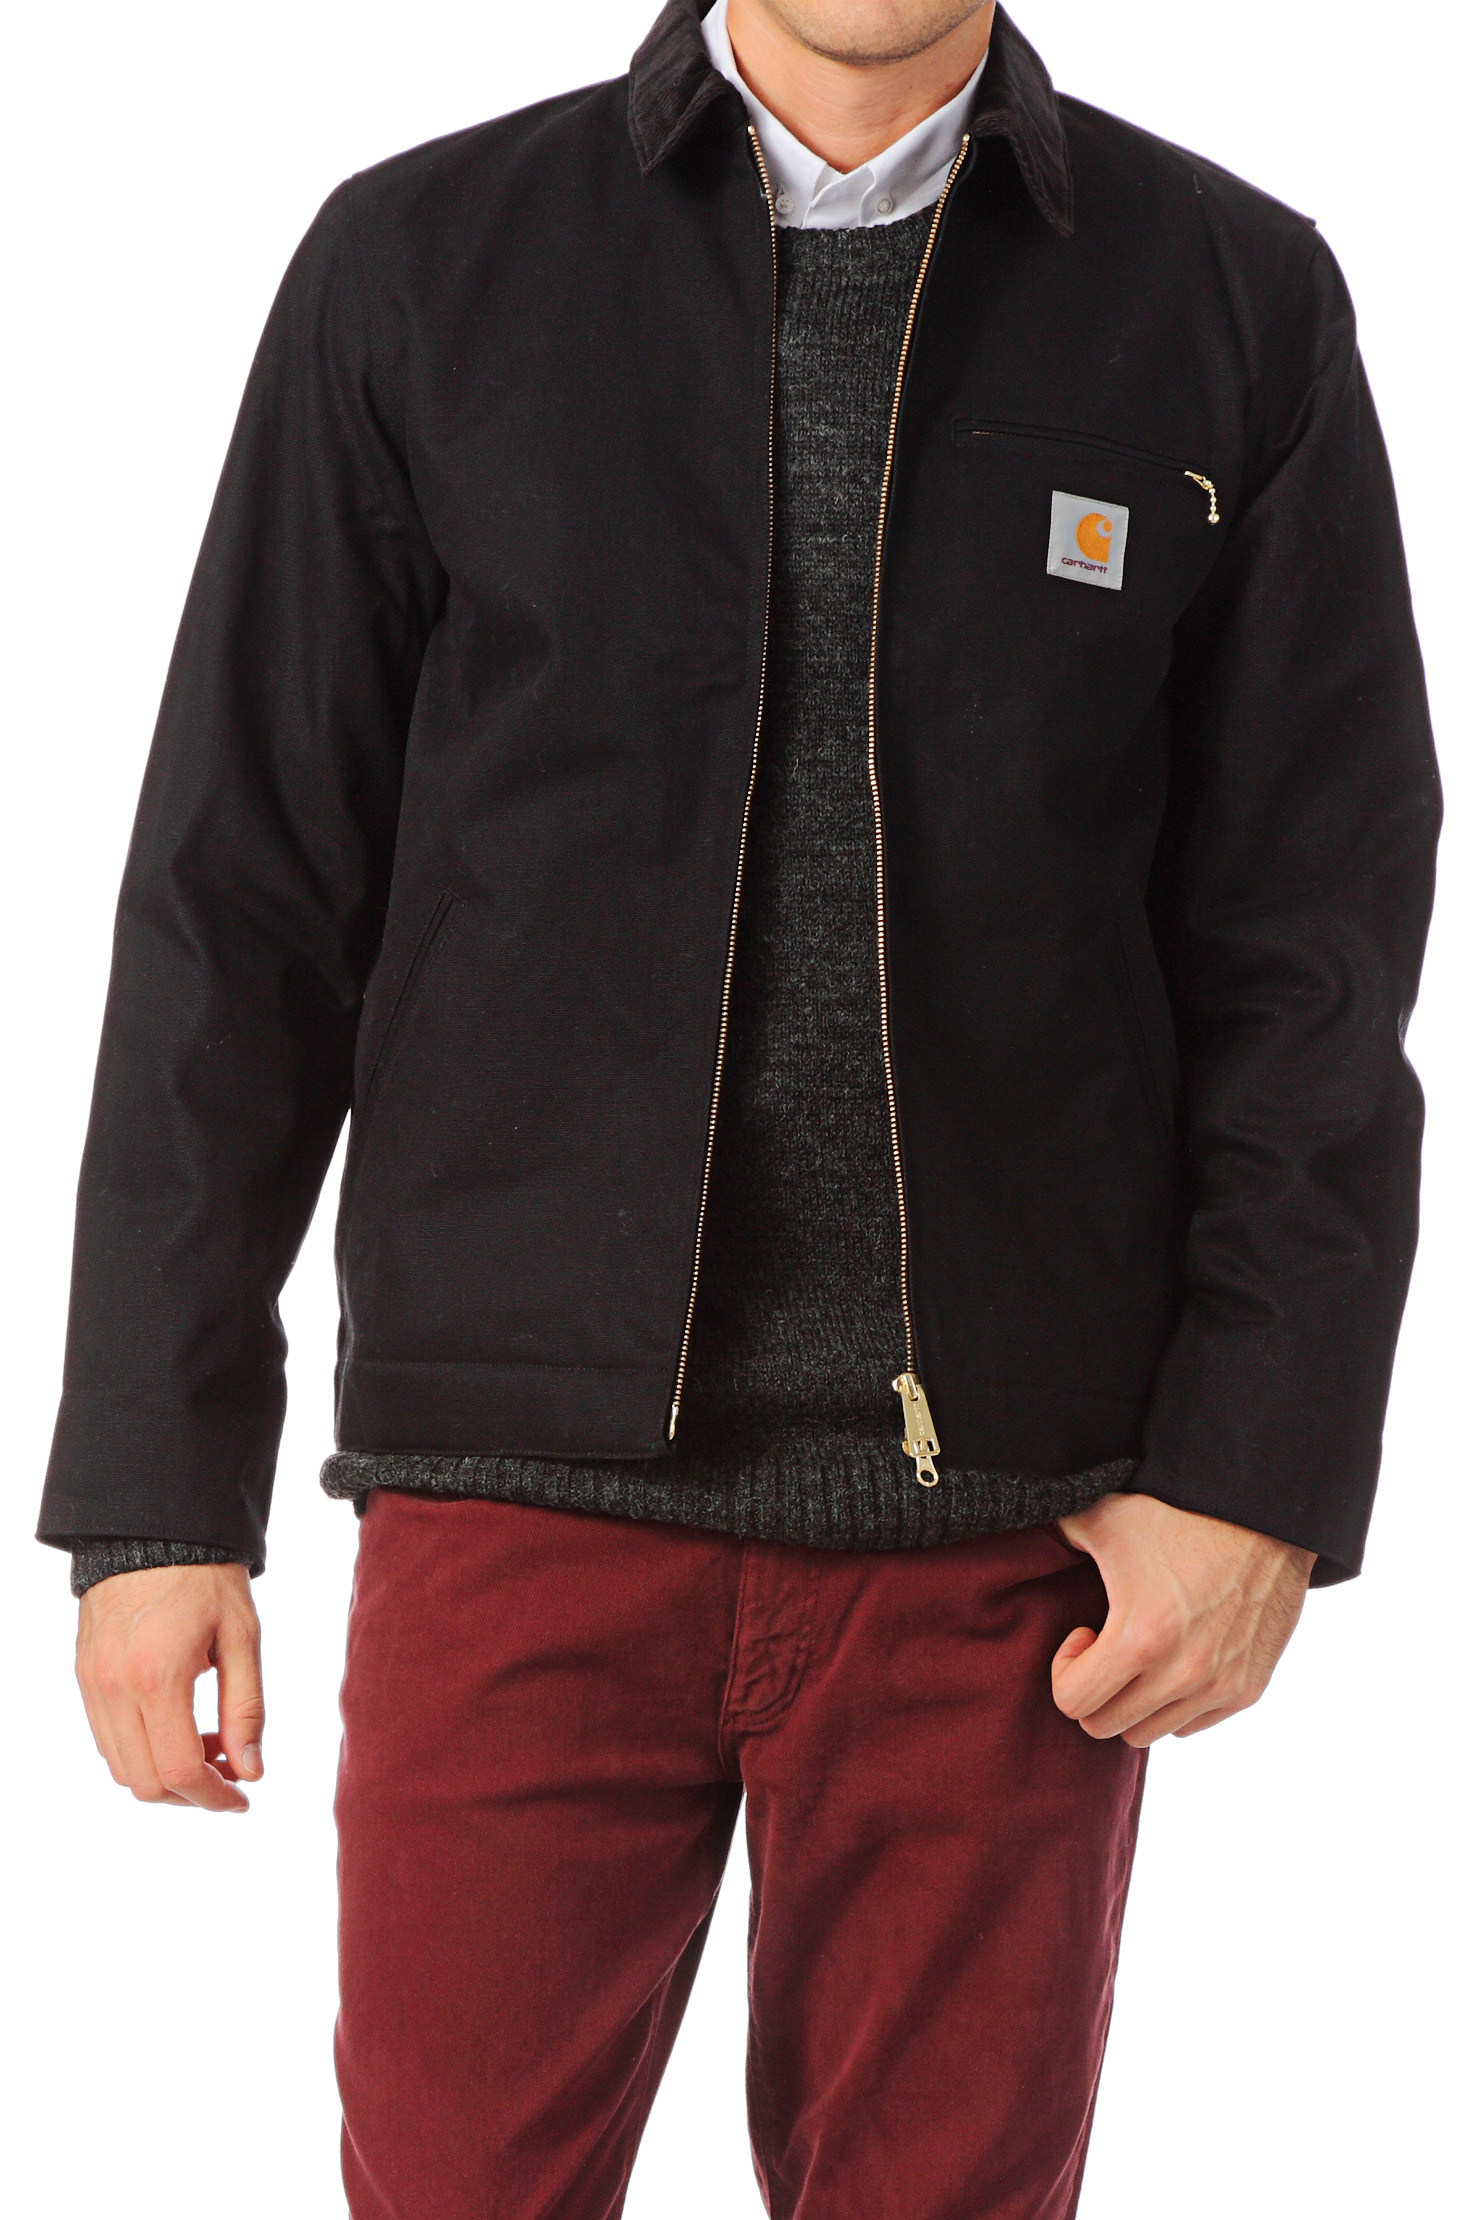 Carhartt Blazer Detroit Jacket In Black For Men Lyst